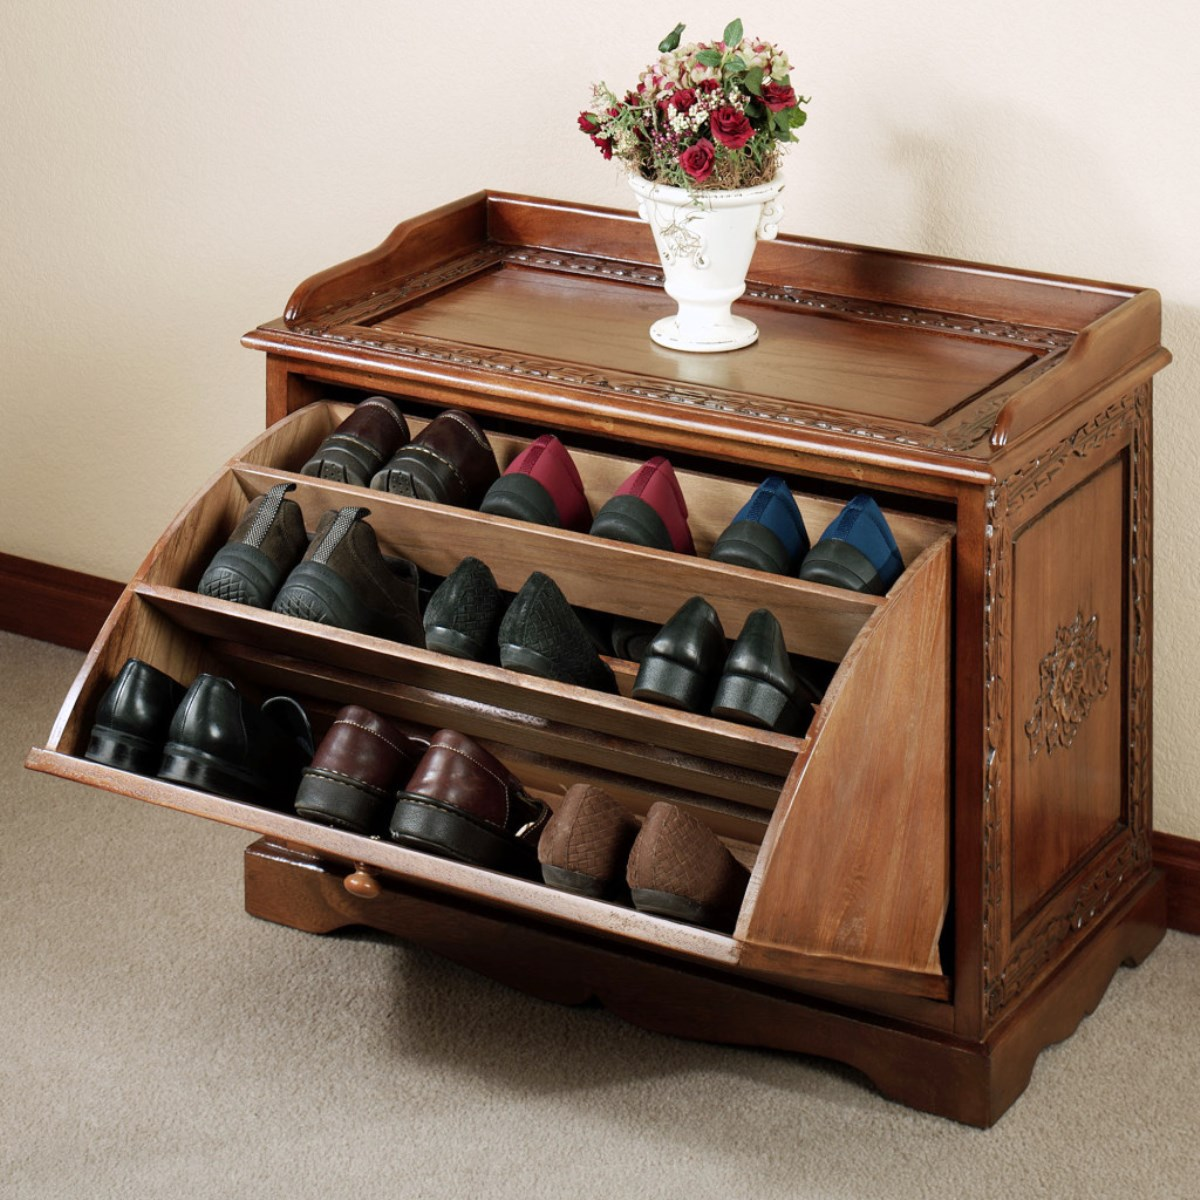 Pictures of Gallery Photos of Cool Shoe Racks ... cool shoe racks